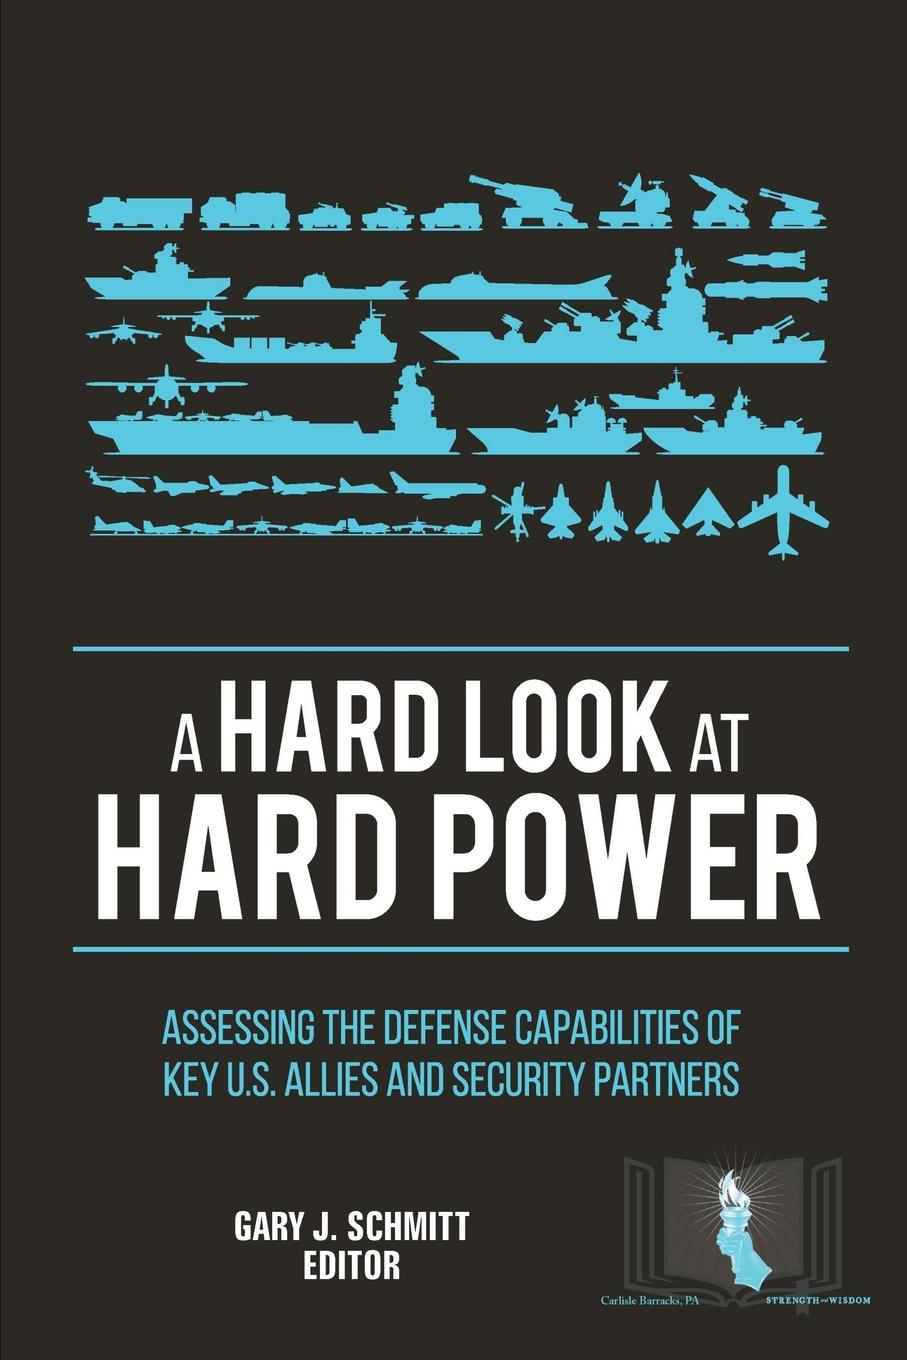 U.S. Army War College, Strategic Studies Institute, Gary J. Schmitt A Hard Look at Hard Power. Assessing The Defense Capabilities of Key U.S. Allies and Security Partners yiwu partners 25mm